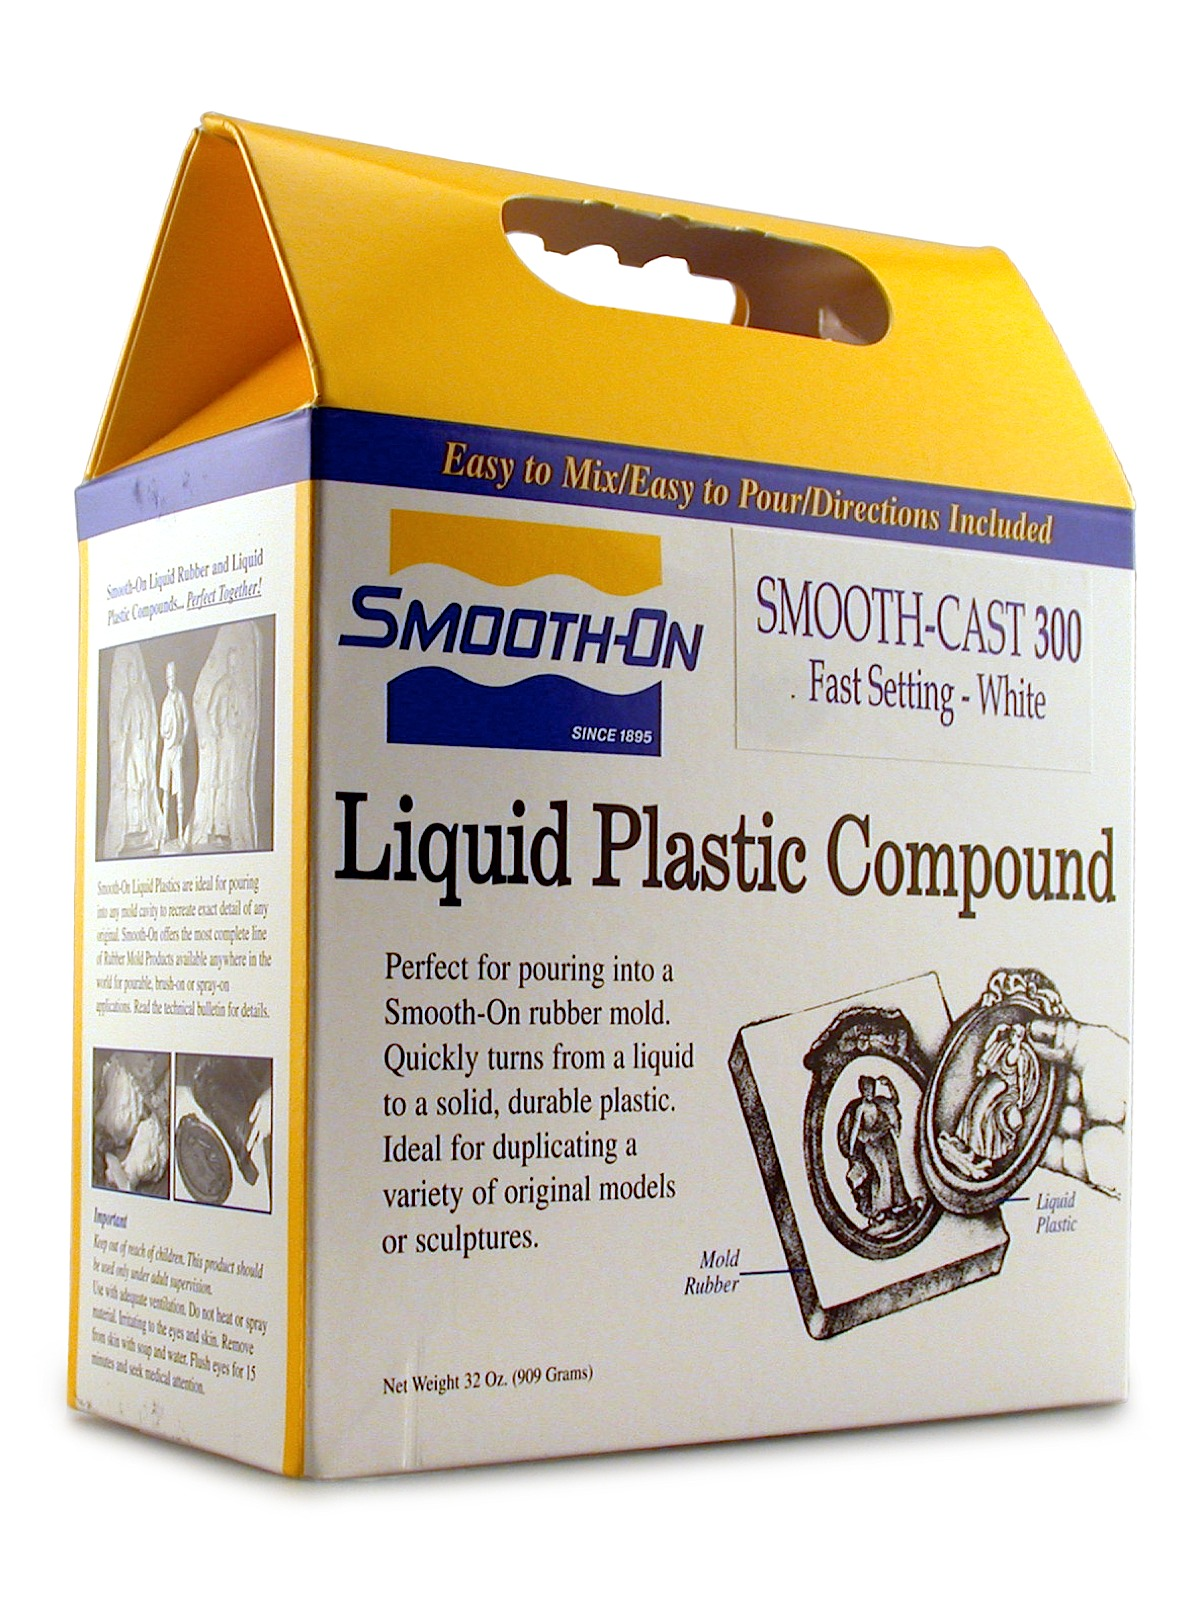 Smooth-Cast 300 Liquid Plastic Compound